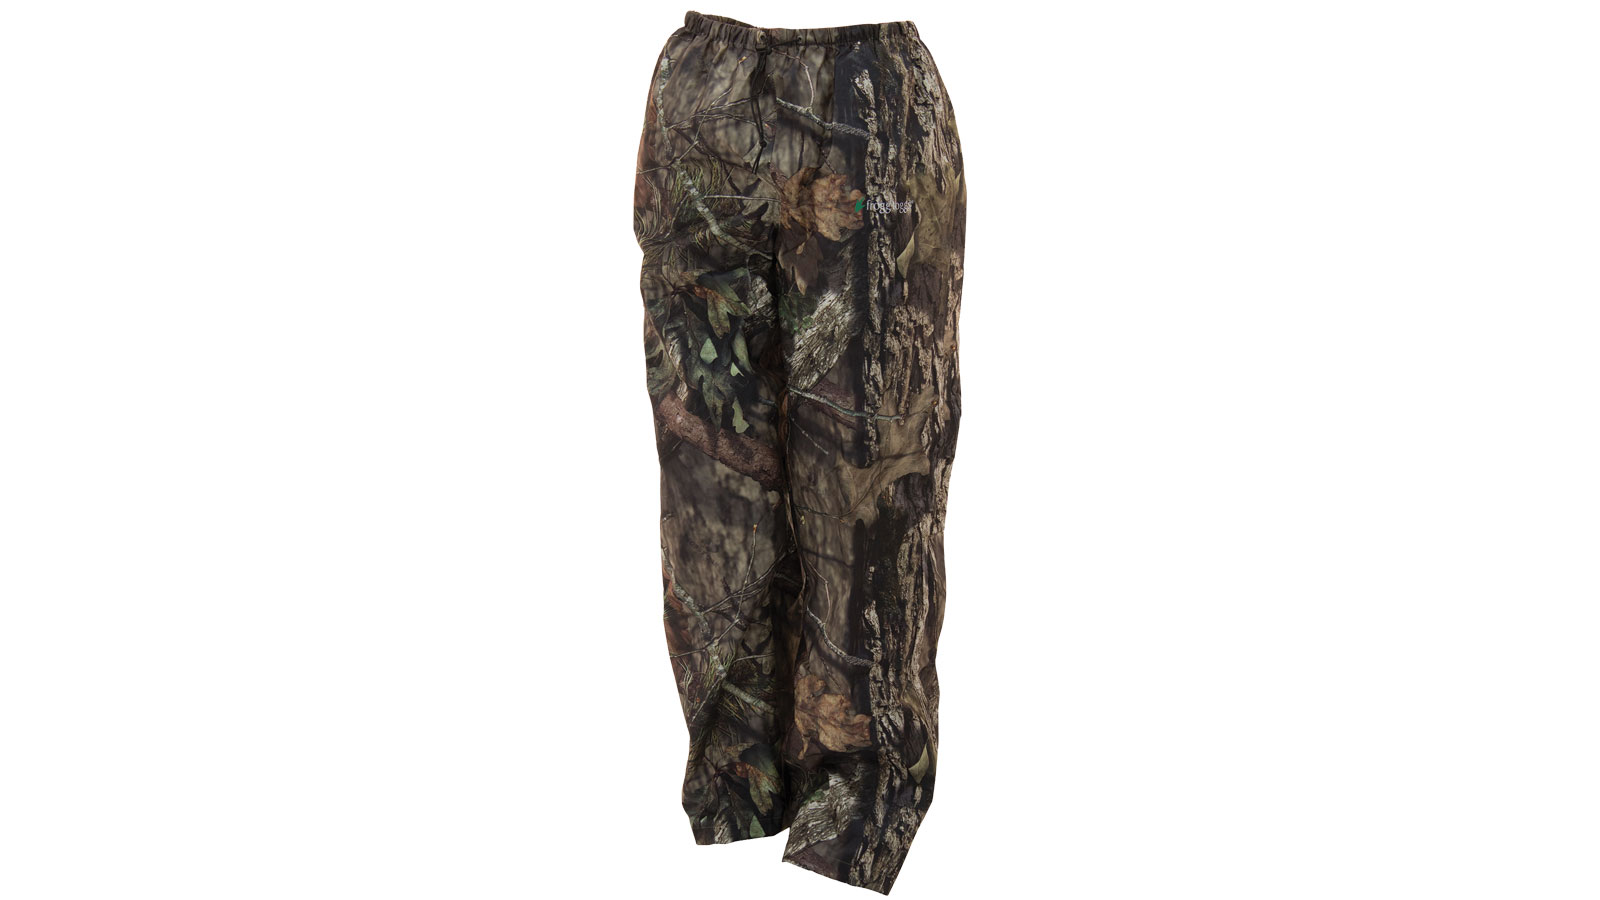 Frogg Toggs Pro Action Camo Pants Mossy Oak Break Up Country, 3X-Large